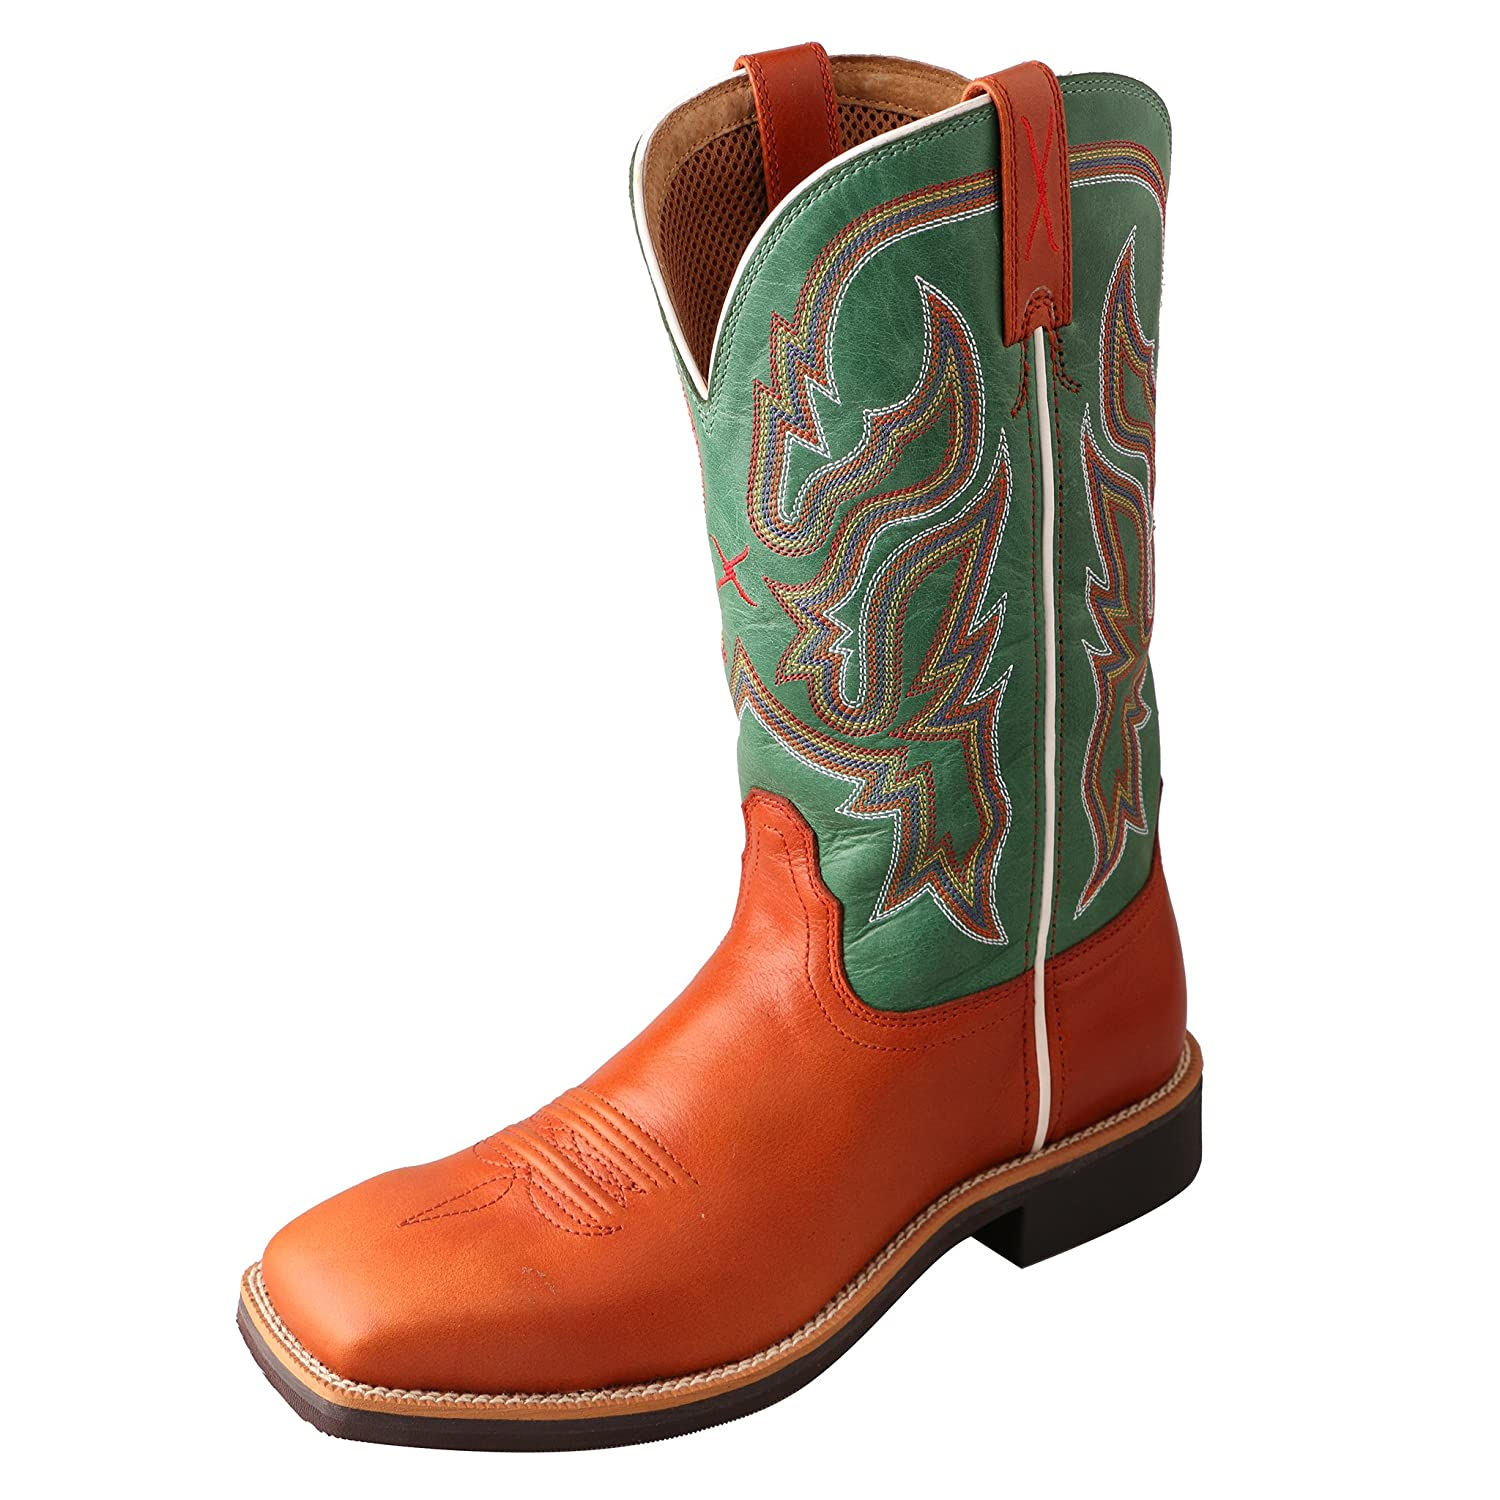 Twisted X Women's Neon Green Top Hand Cowgirl Boot Square Toe - Wth0007 B01ES0RECY 10|Cognac